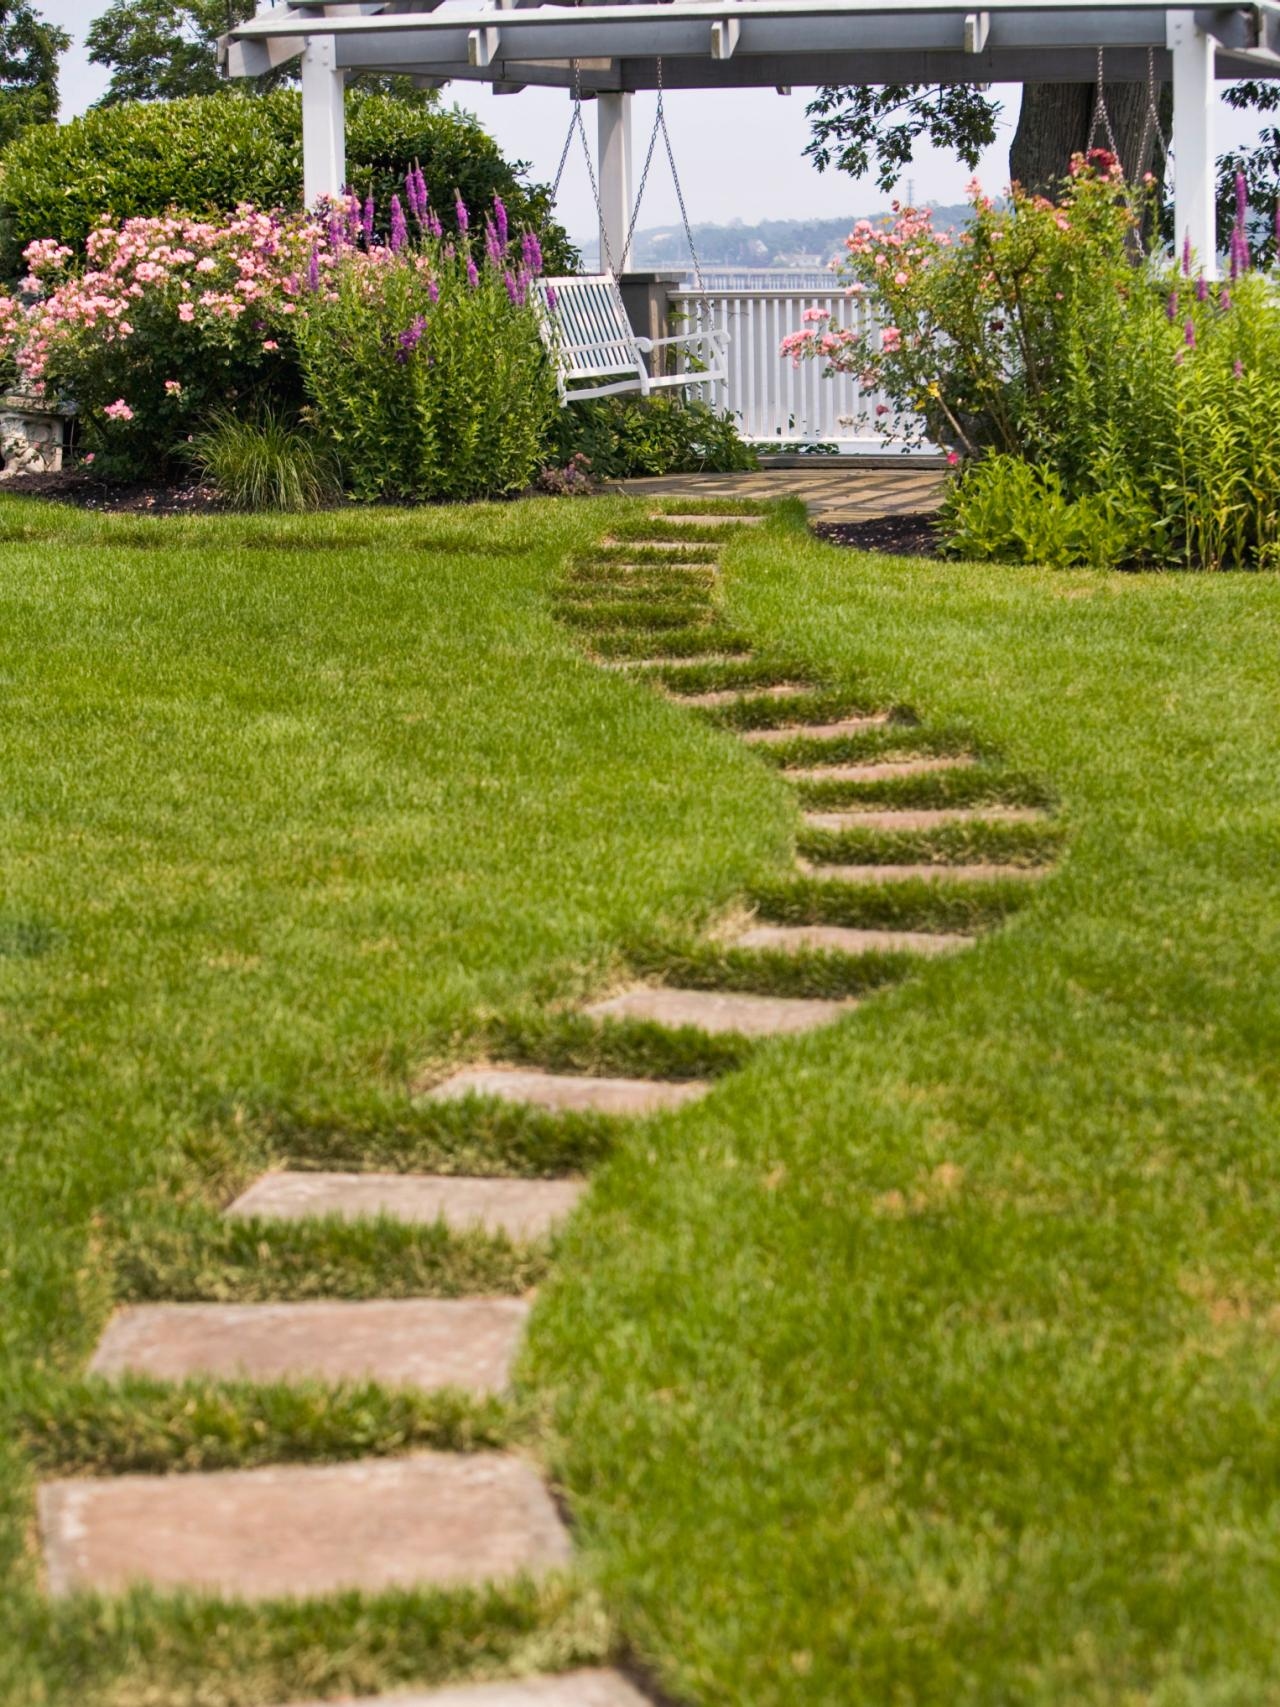 10 stunning landscape ideas for a sloped yard page 6 of for Landscaping ideas stone path